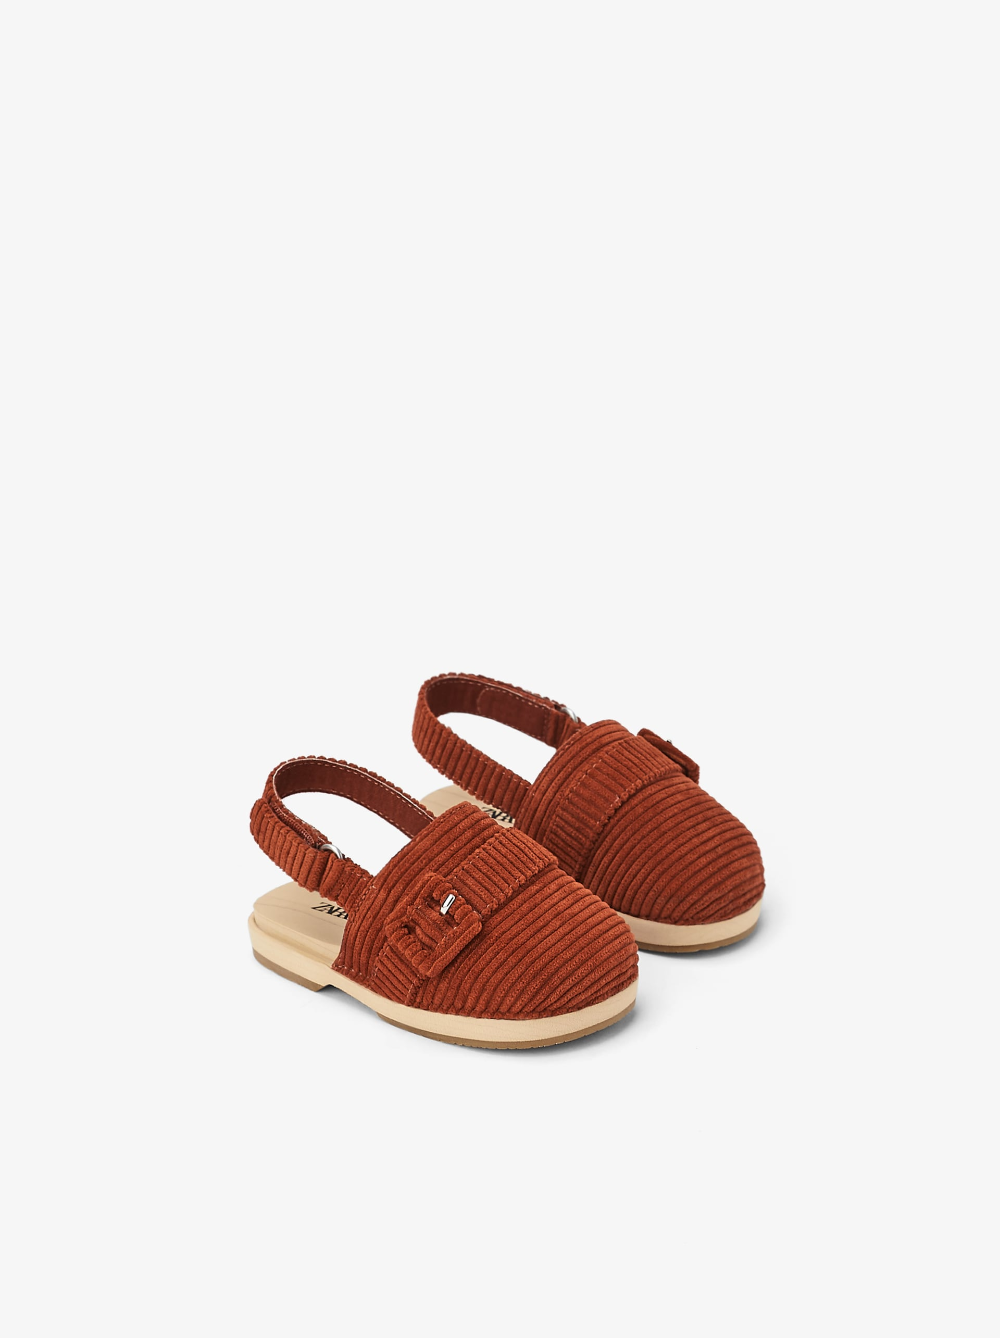 CORDUROY CLOGS - NEW IN-BABY GIRL | 3